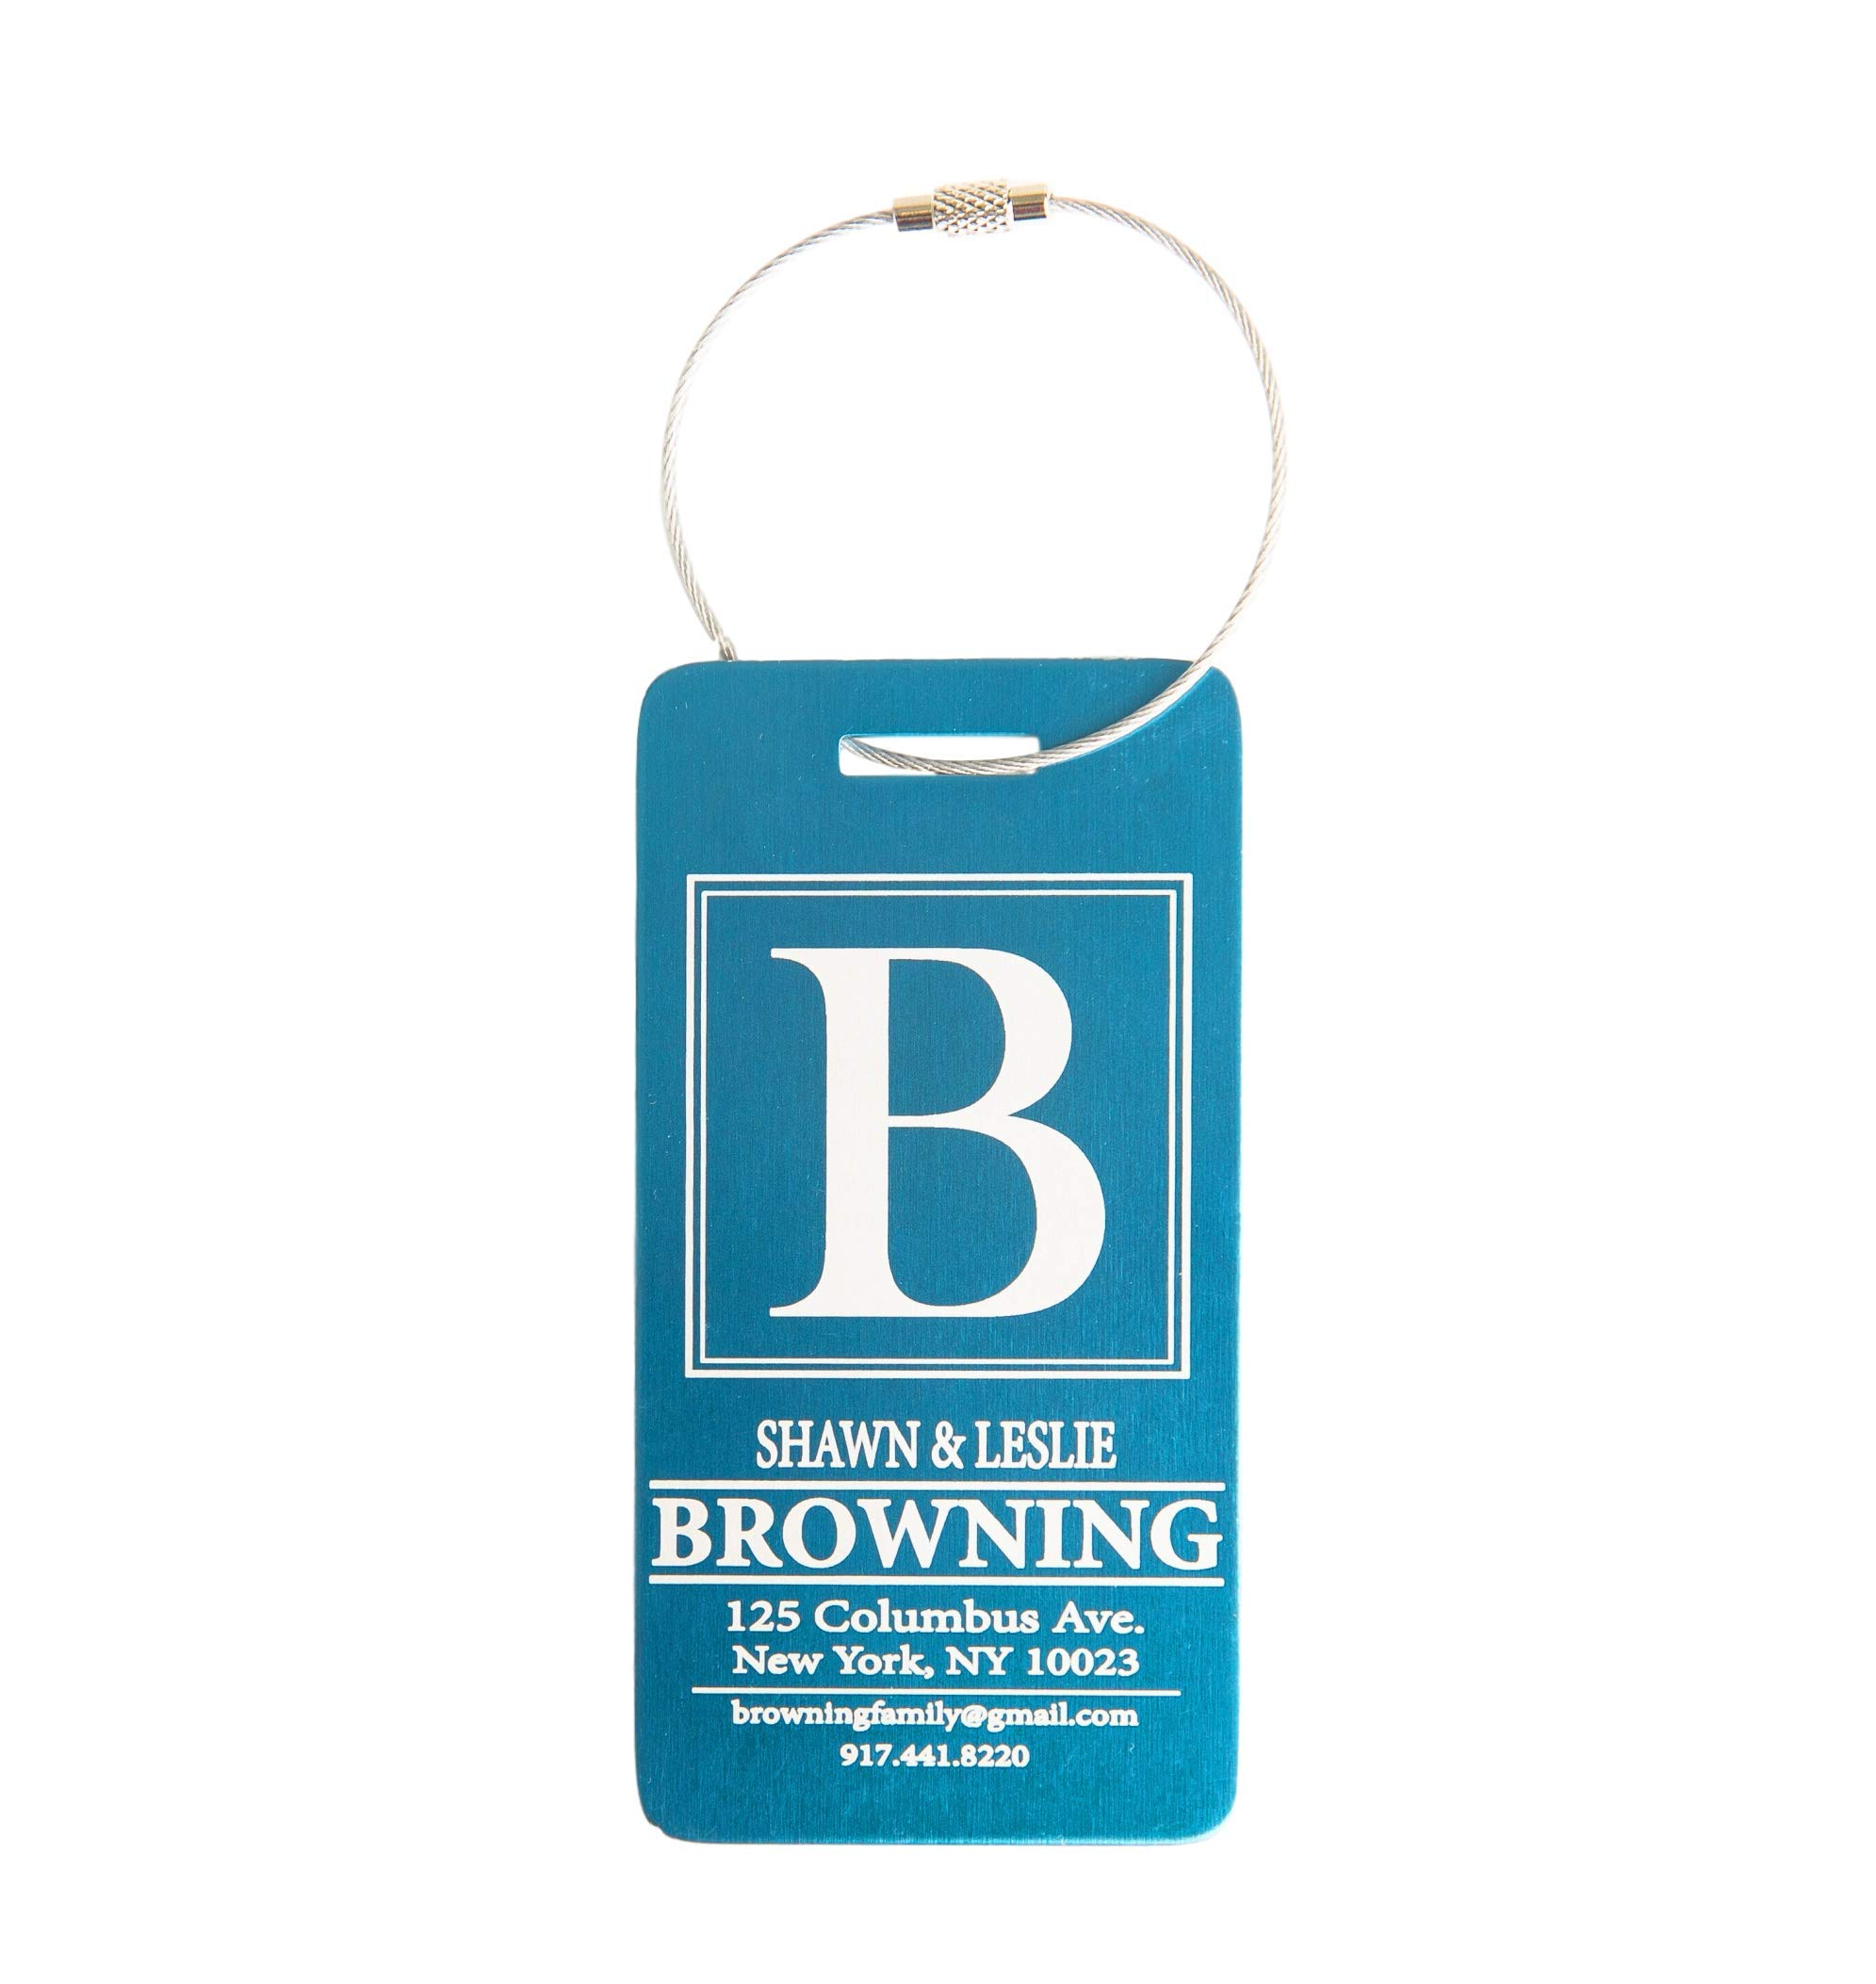 Personalized Luggage Tags Gifts with Engraved Design - Elegant and Durable Travel Suitcase Name Tags, Gift for Travelers Men and Women (4 Luggage Tags, Aqua)